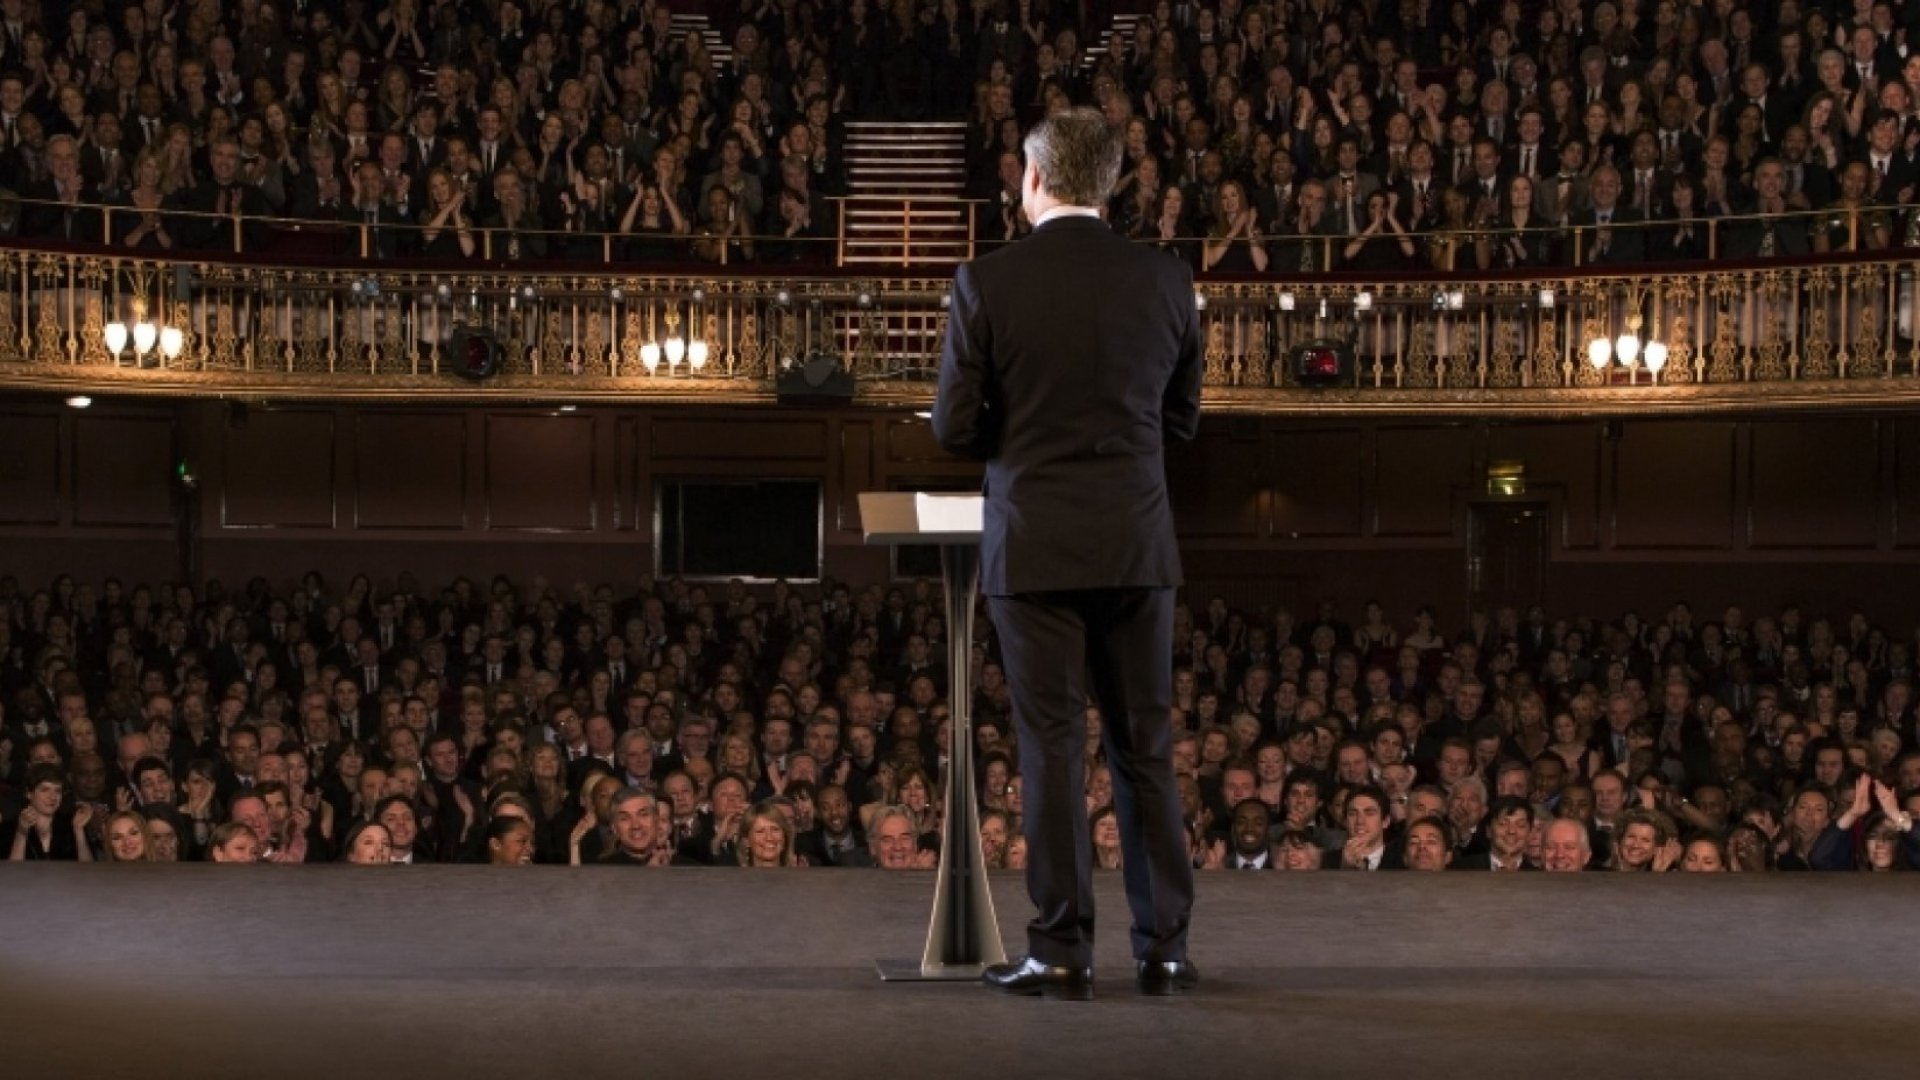 6 Public Speaking Tips From a Navy SEAL